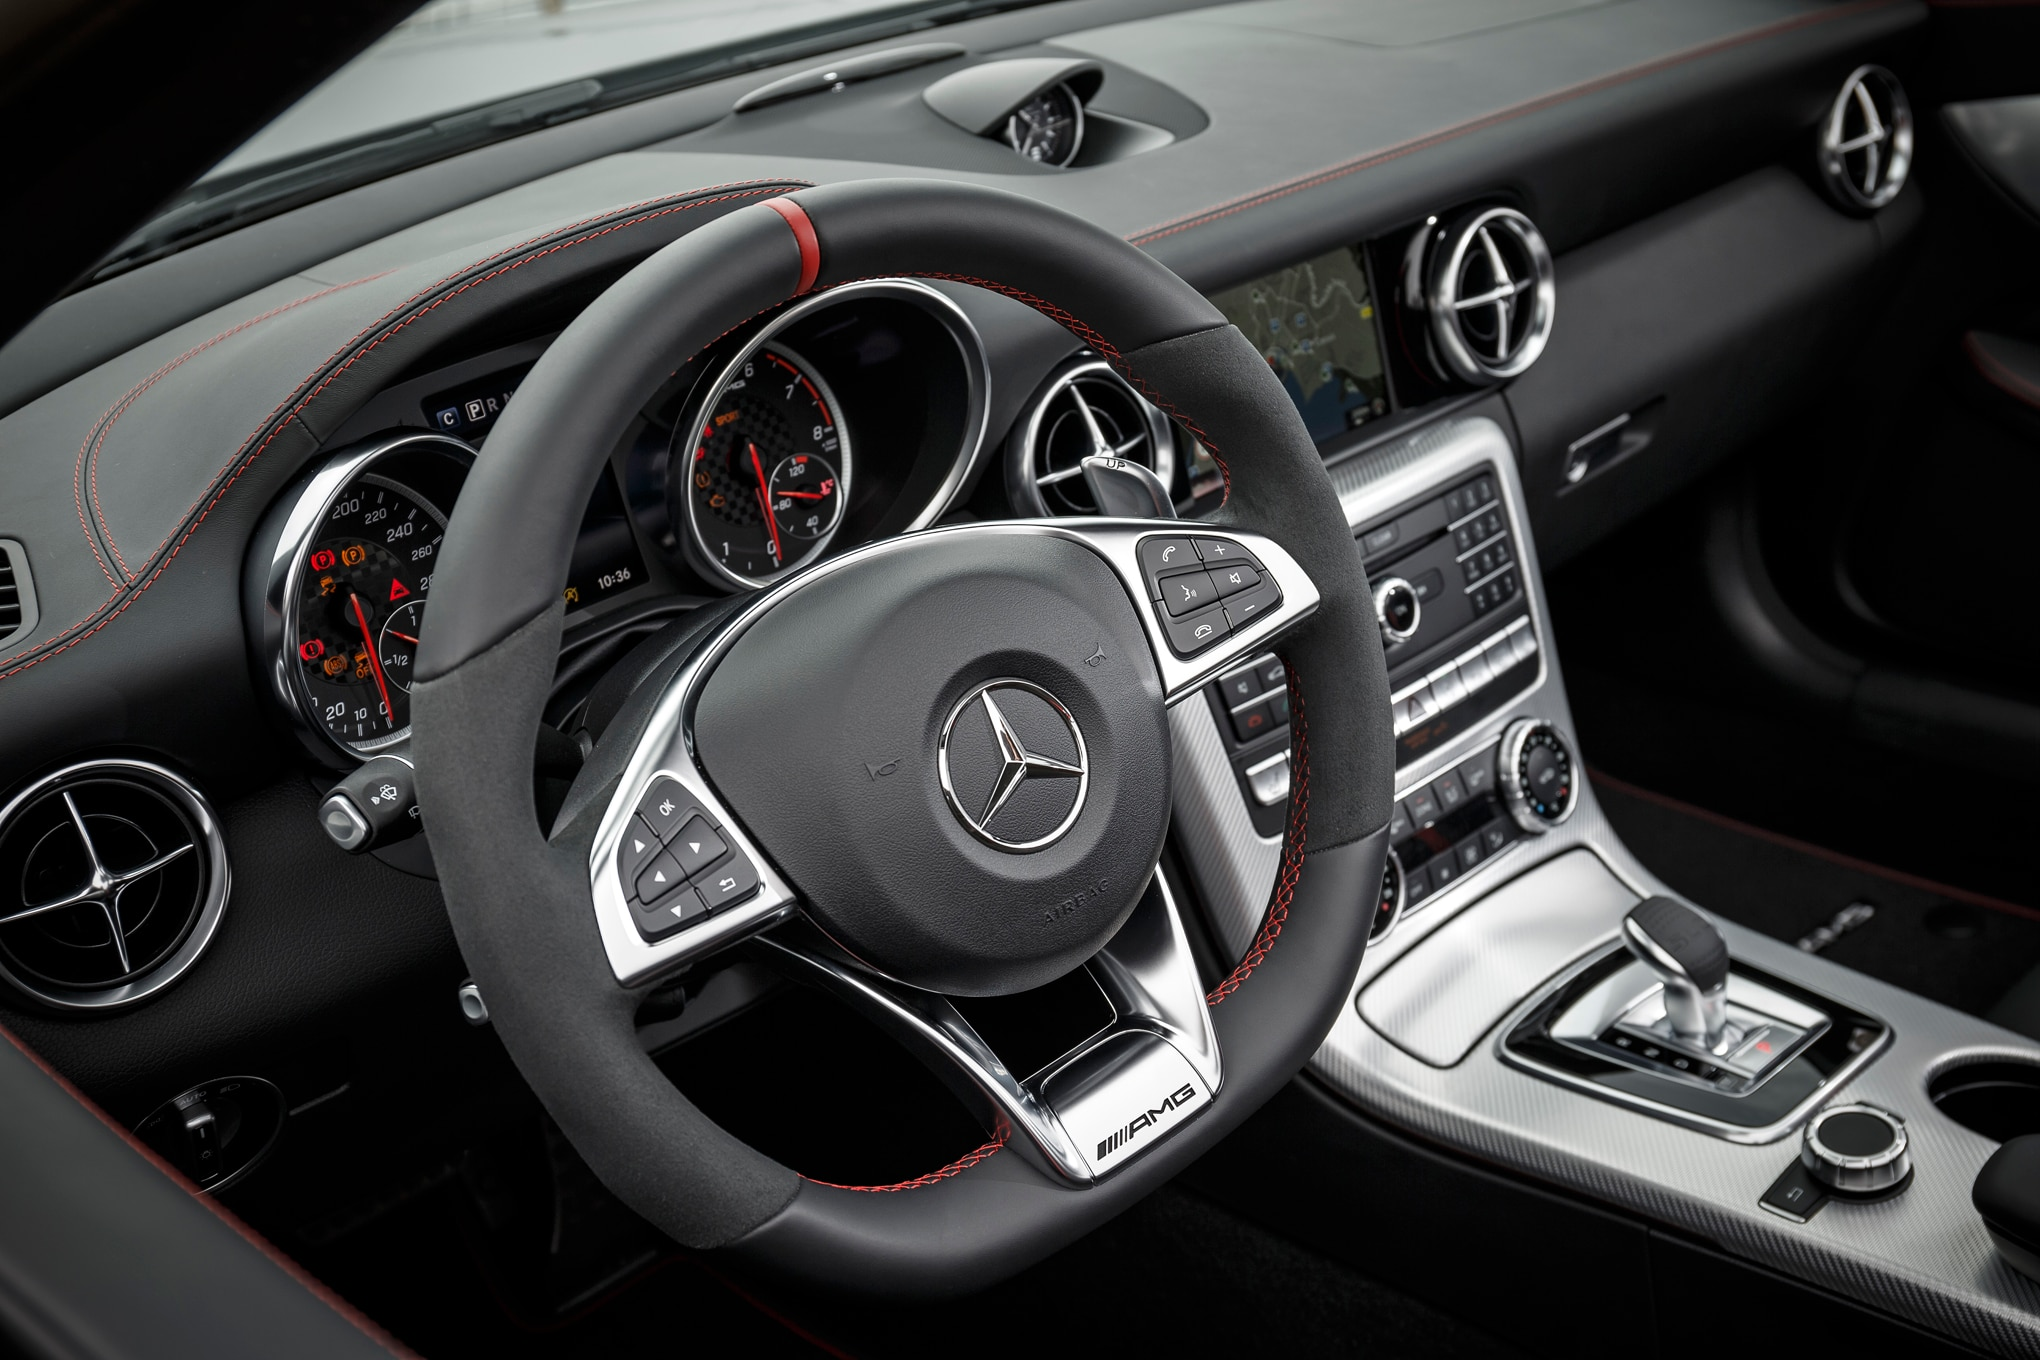 http://st.automobilemag.com/uploads/sites/11/2016/04/2017-Mercedes-AMG-SLC43-interior-02.jpg